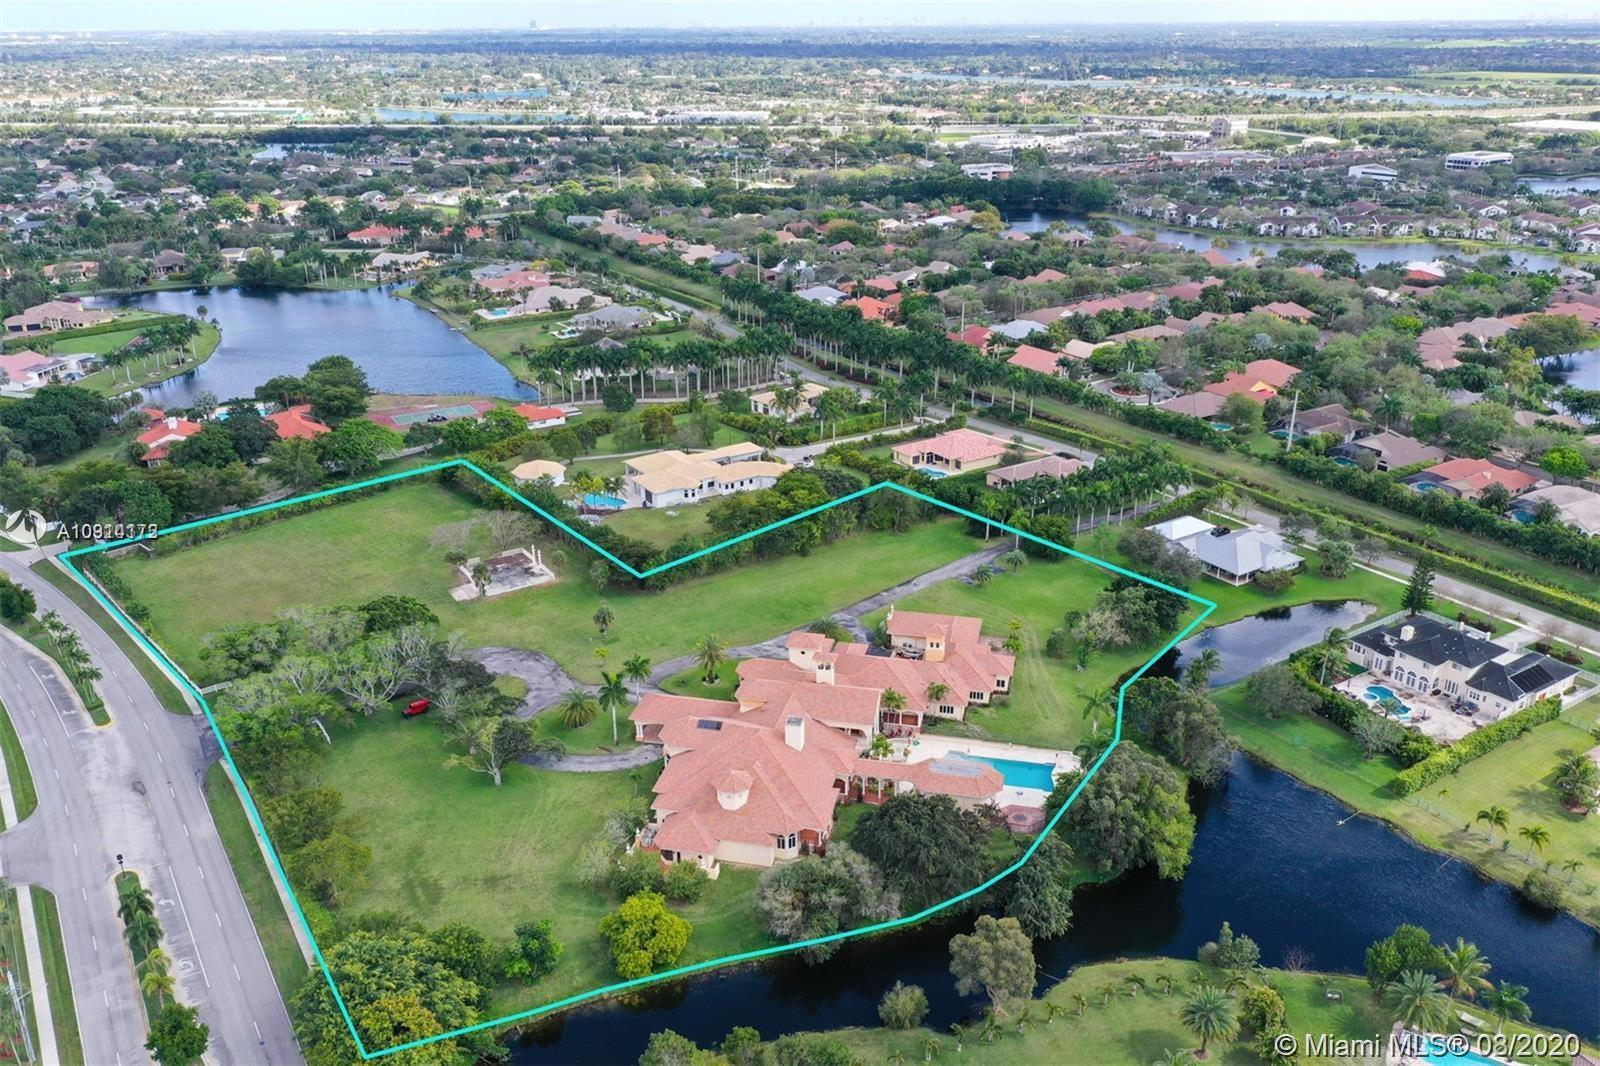 Weston - 16260 Saddle Club Rd, Weston, FL 33326